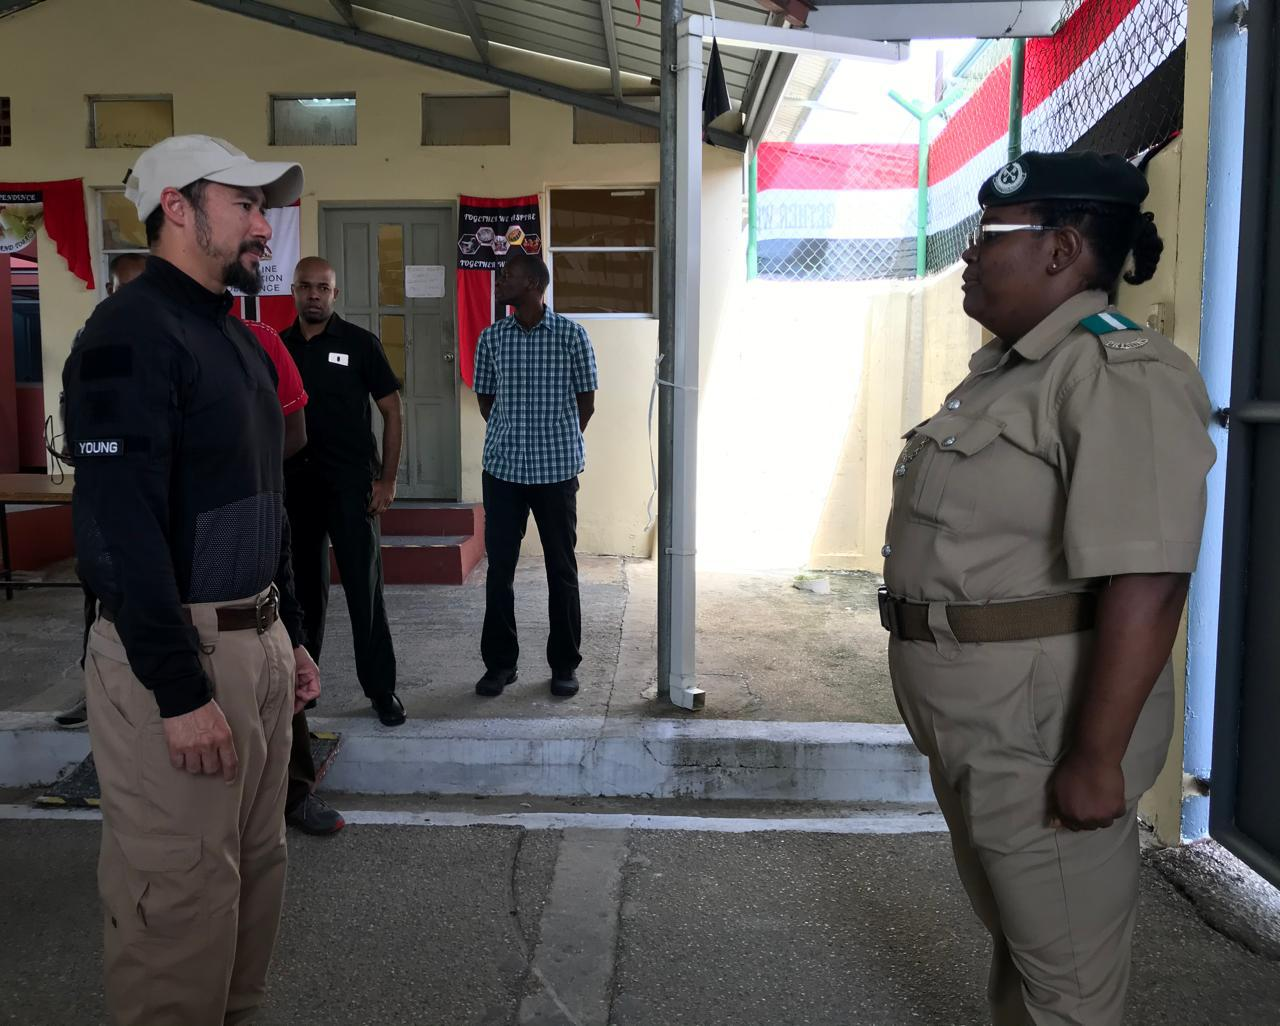 National Security Minister Tours Maximum Security Prison